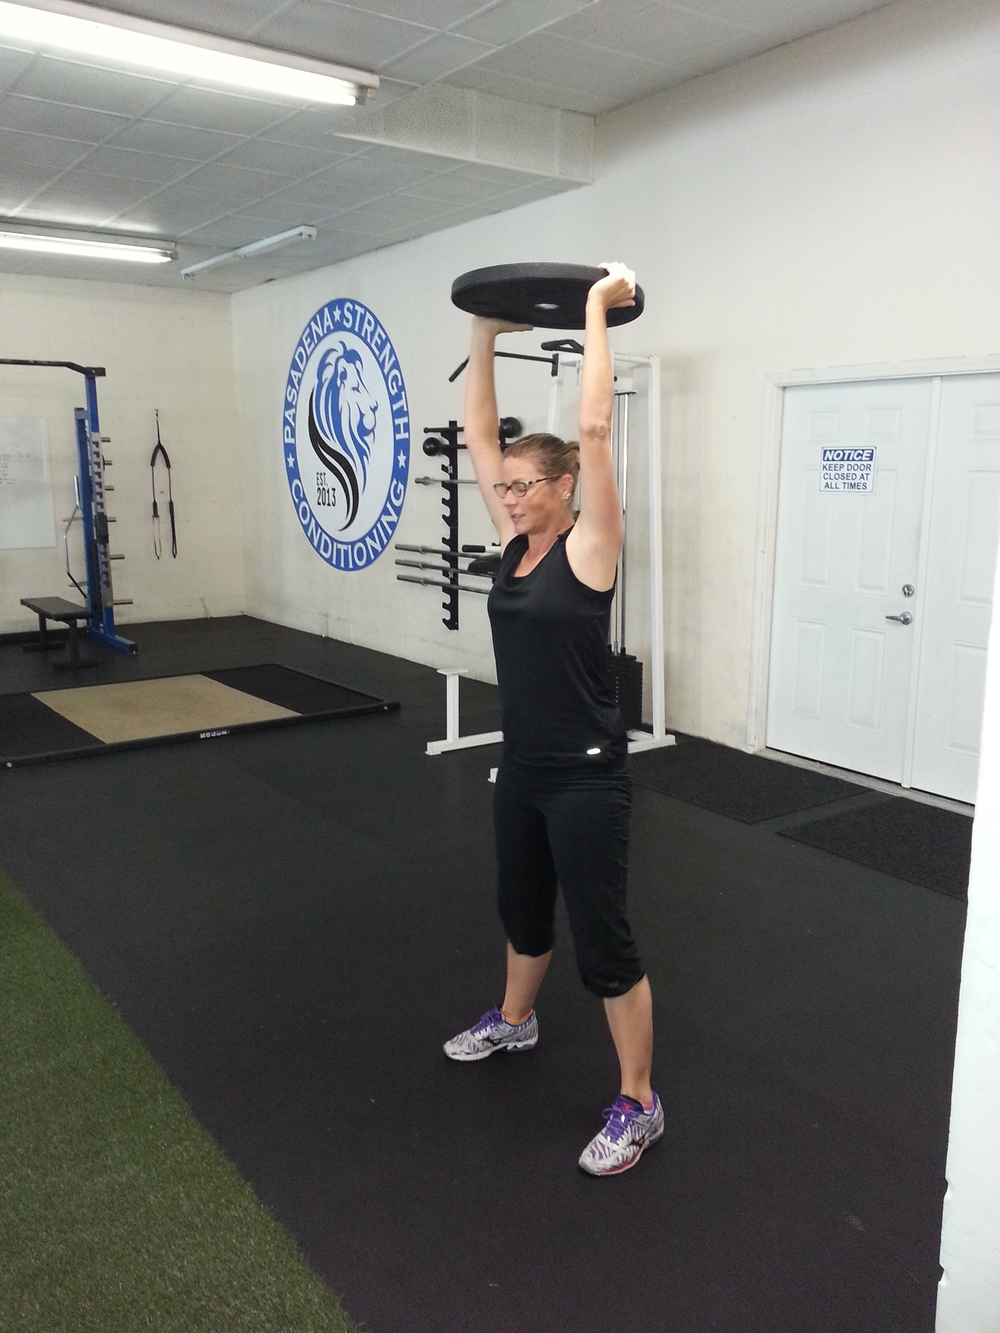 Jerri doing Overhead Squats at Pasadena Strength and Conditioning, July 2014